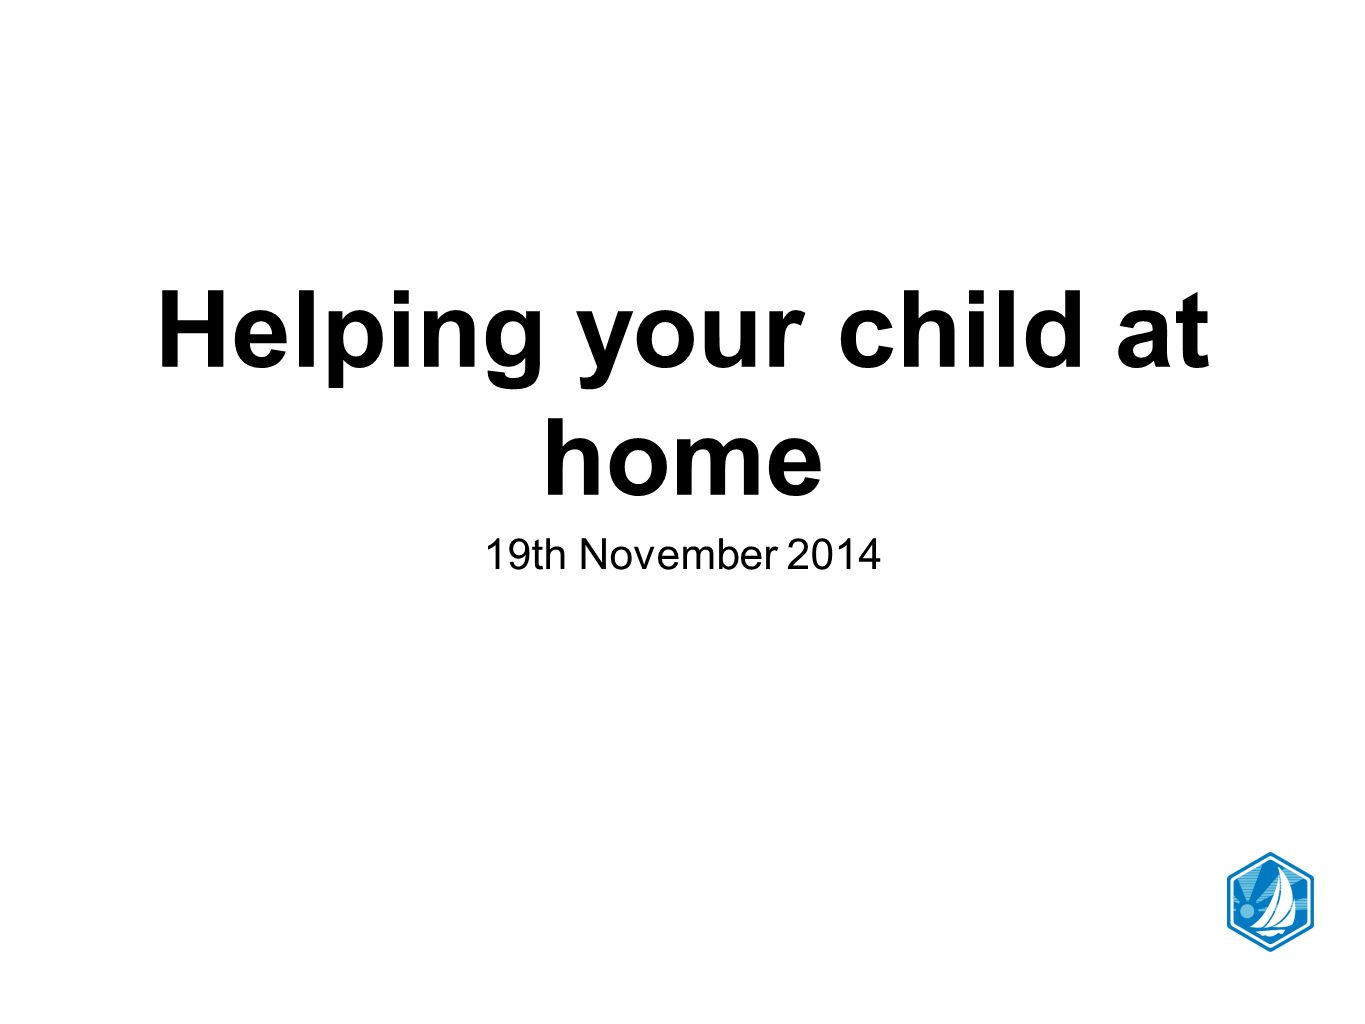 Helping your child at home 19th November 2014